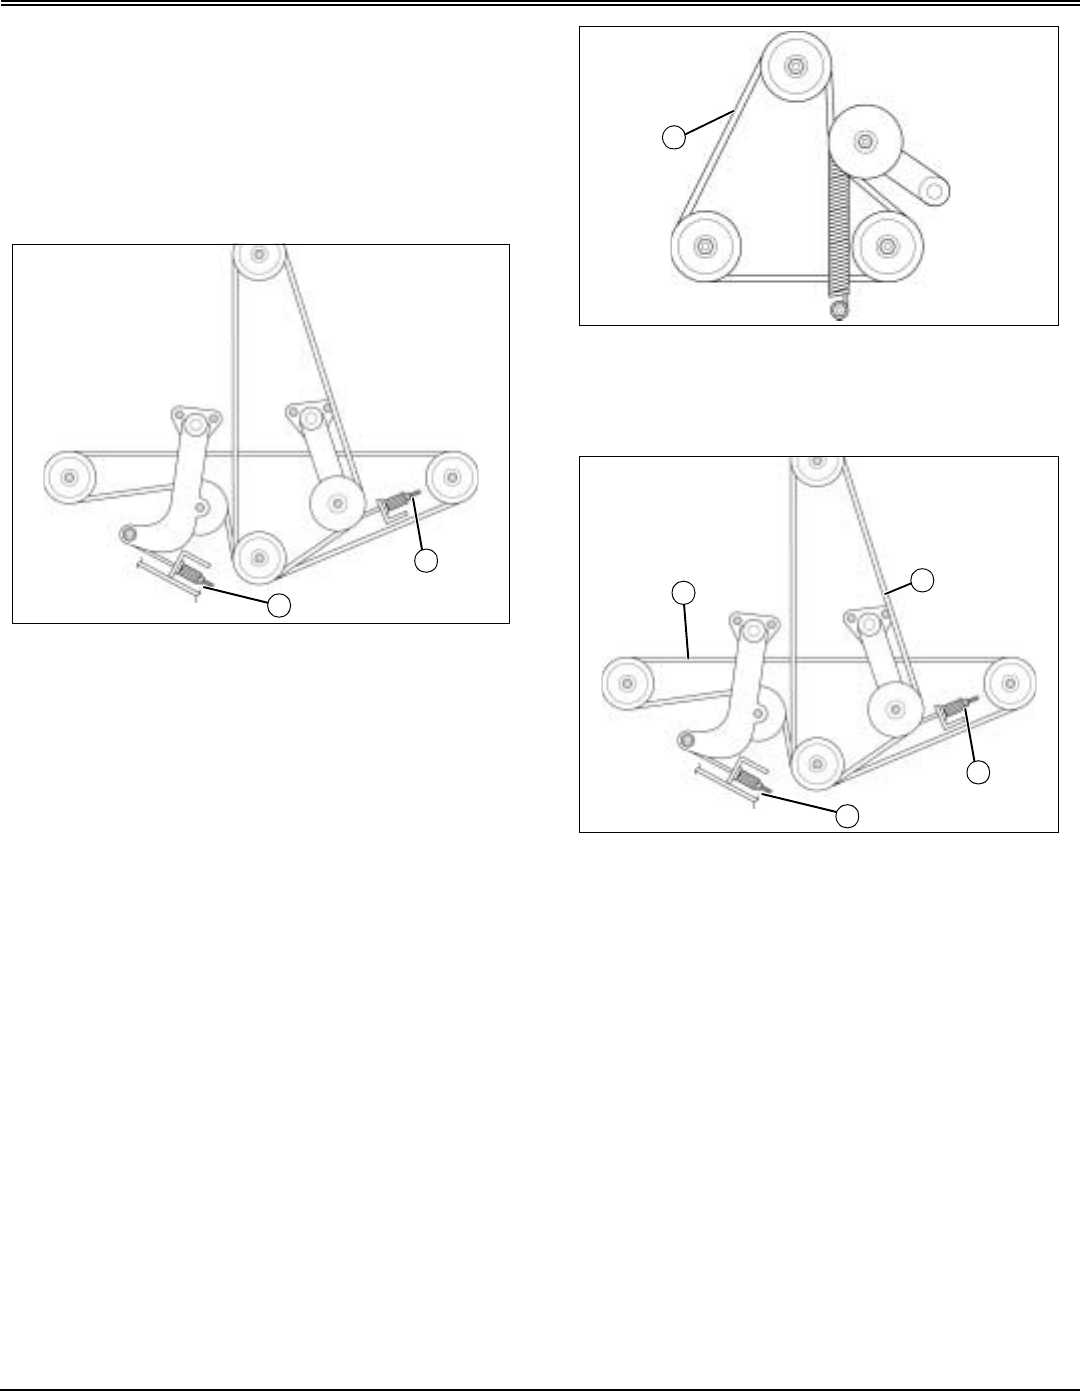 scotts riding lawn mower wiring diagram images great dane lawn mower gdb10026 user guide on lawn mower belt diagram